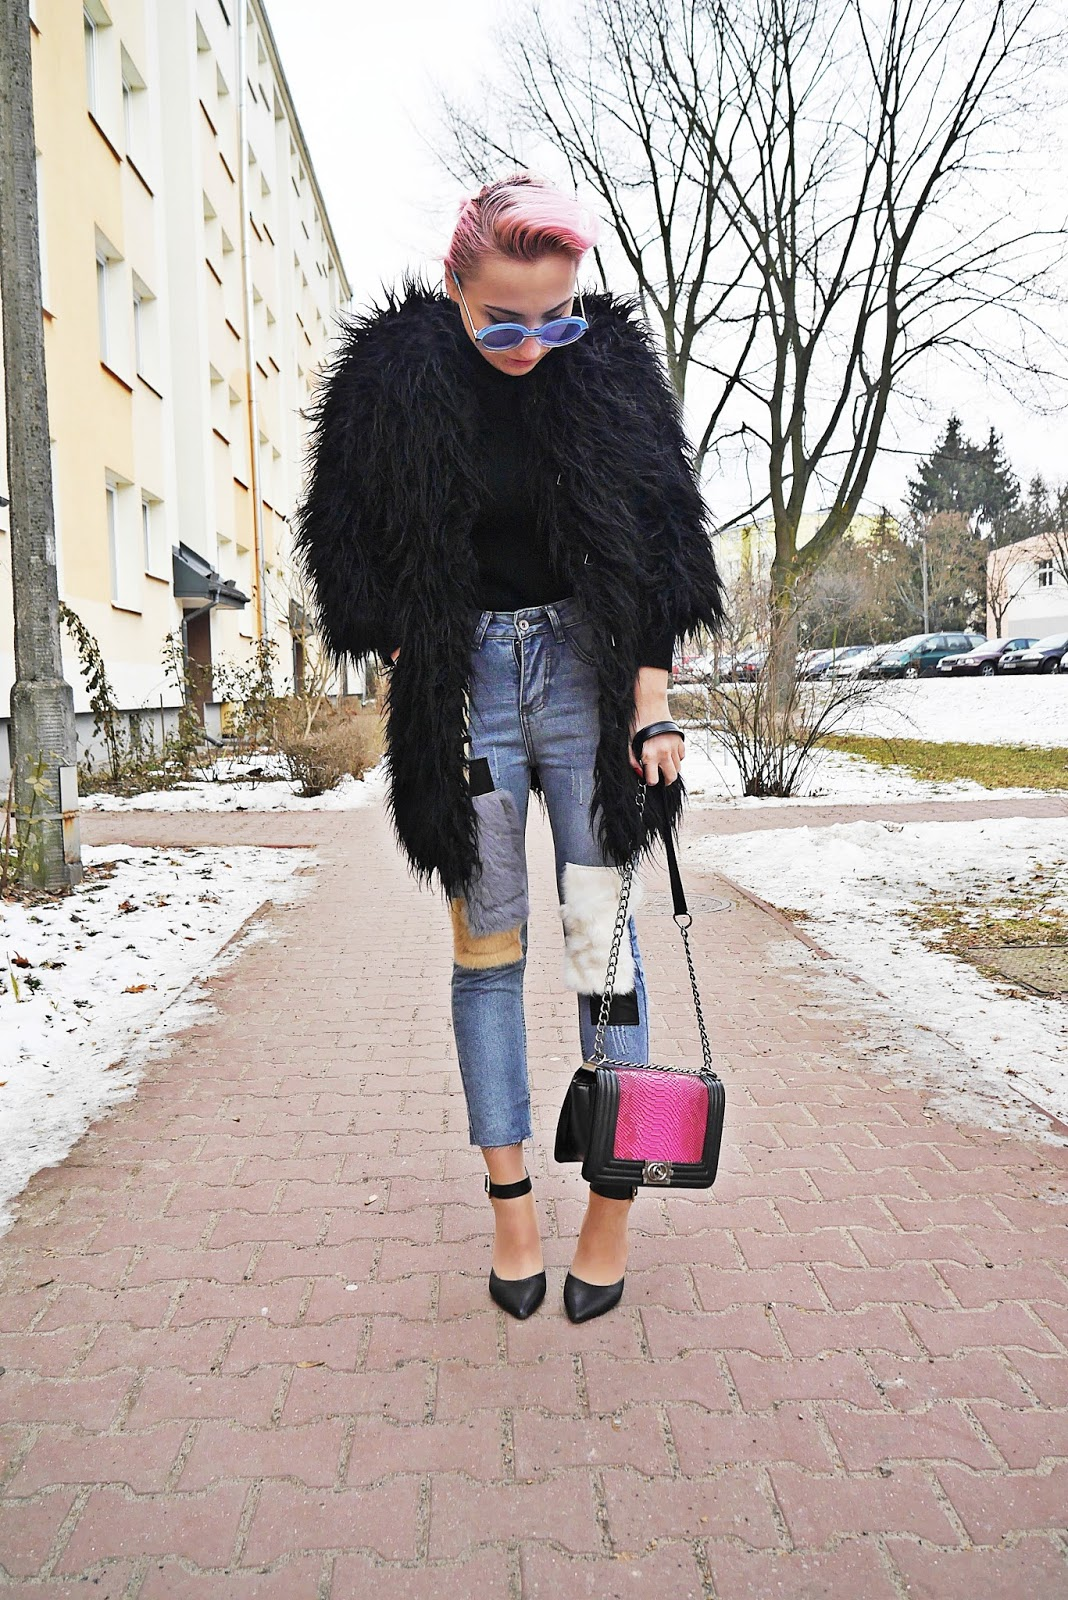 jeans_fur_chanel_blog_karyn_boy_blog_020217